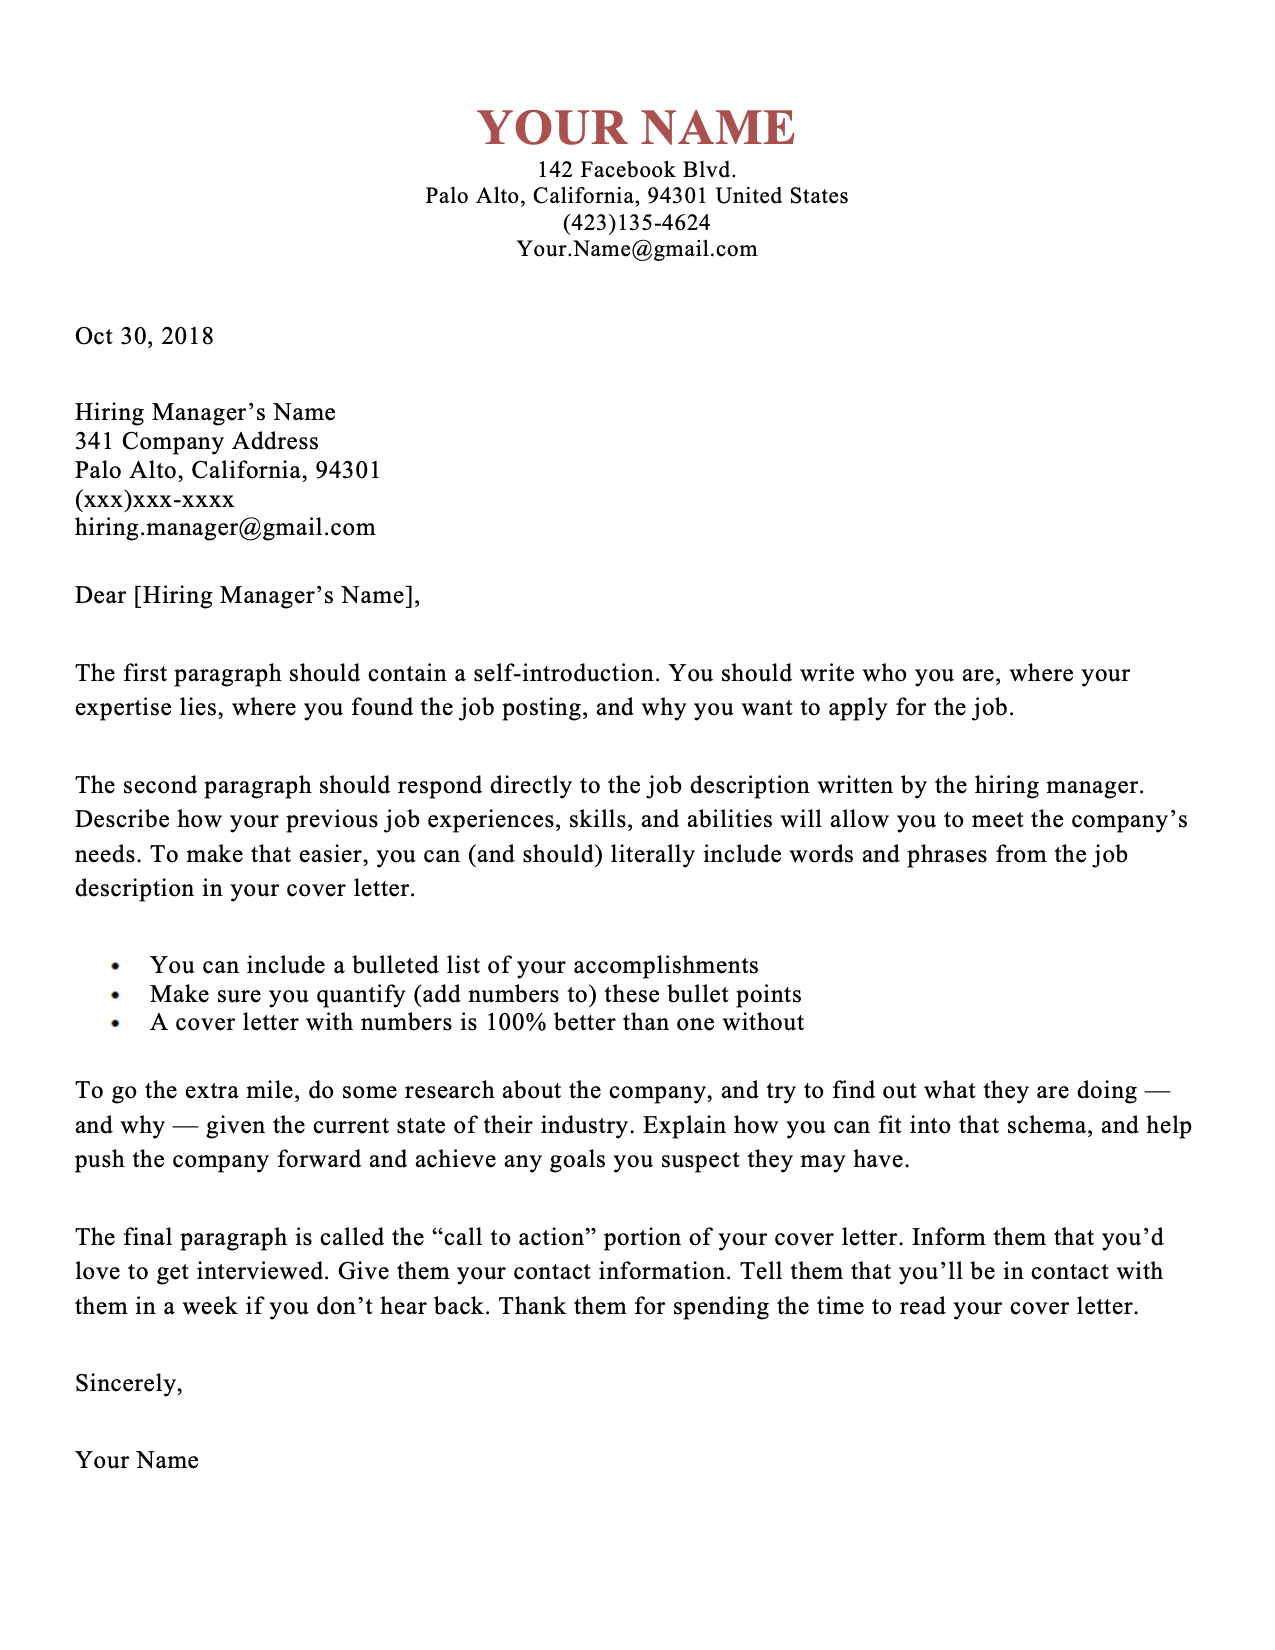 Simple Cover Letter Templates Cover letter template